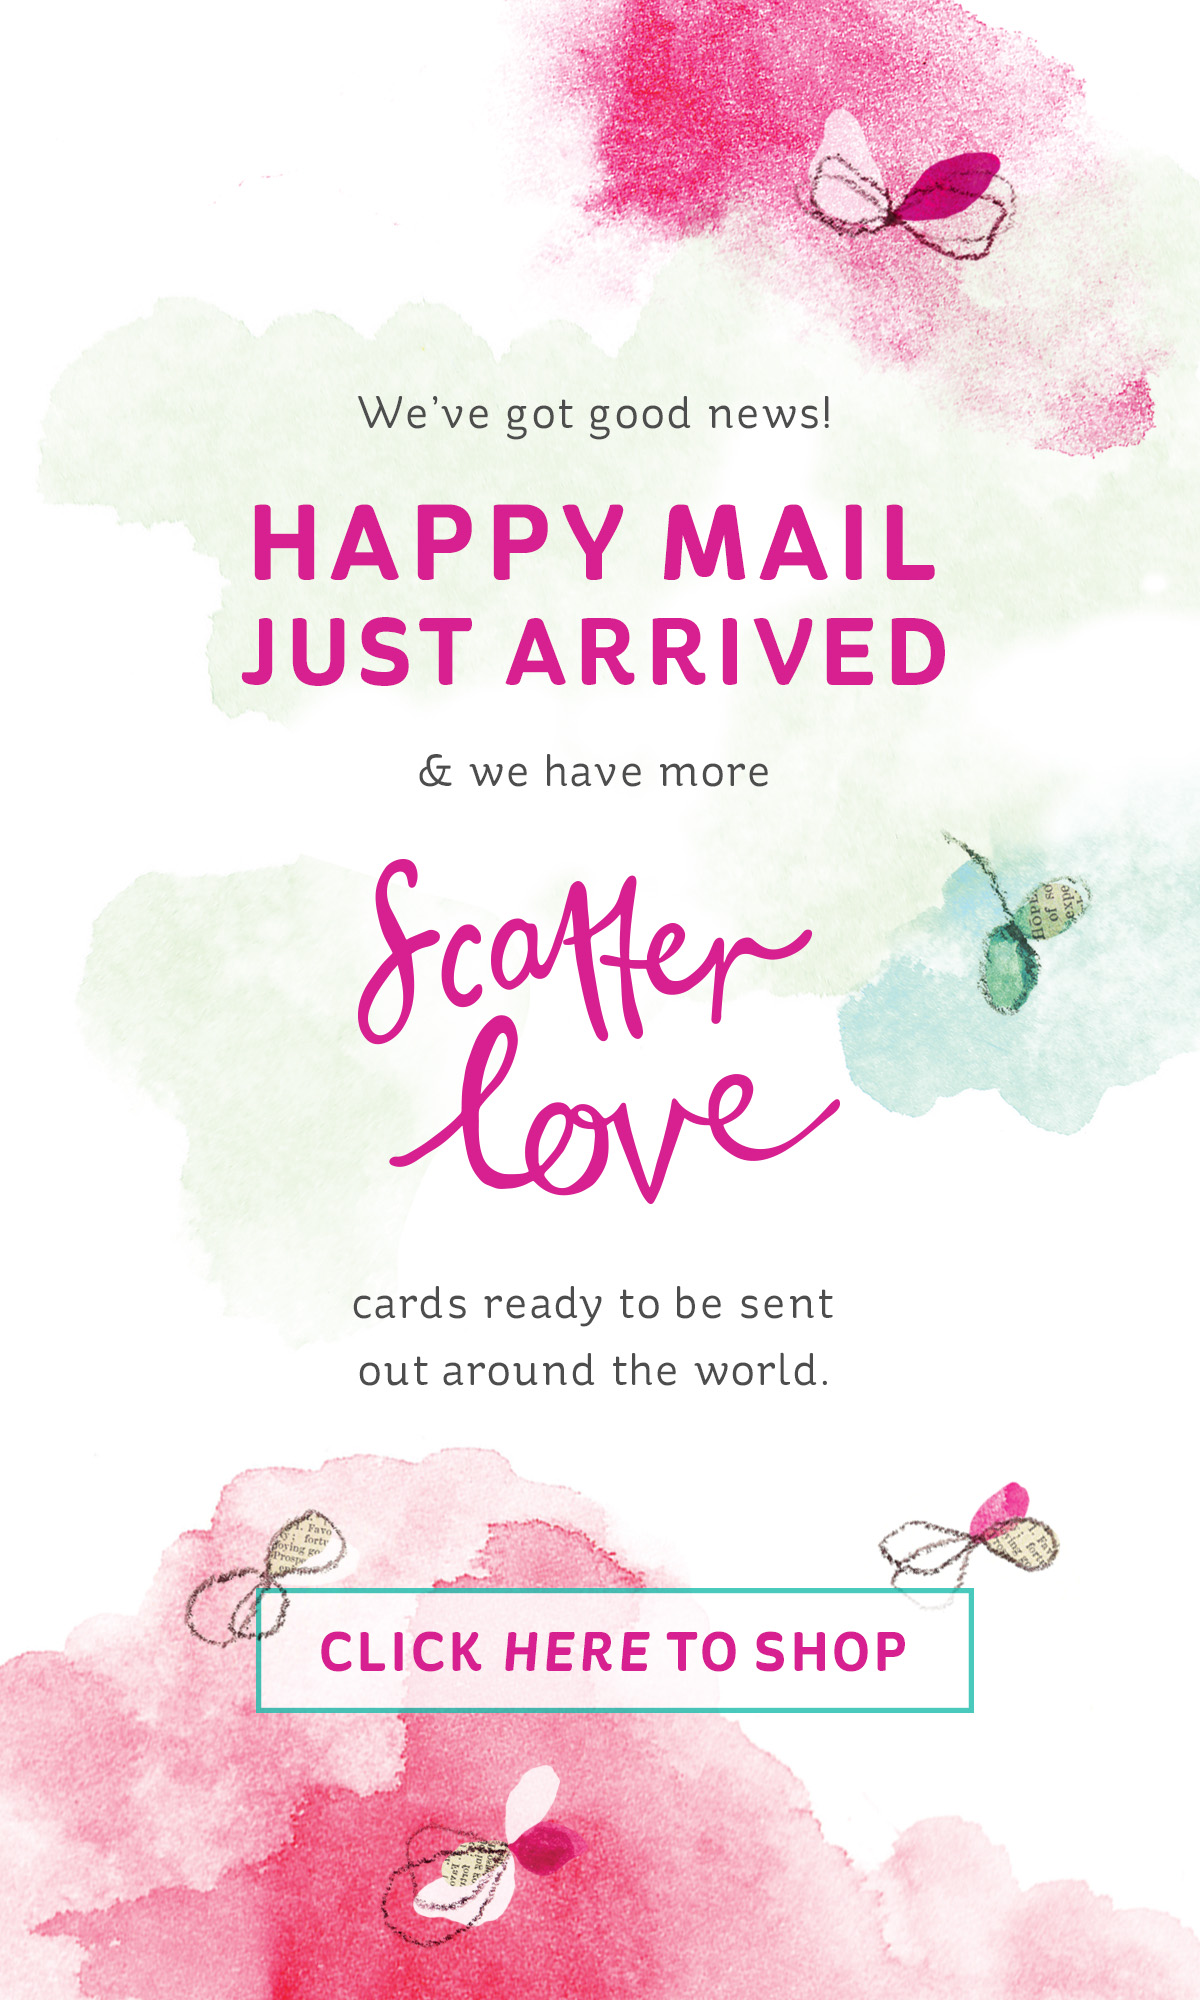 HappyMail_Email